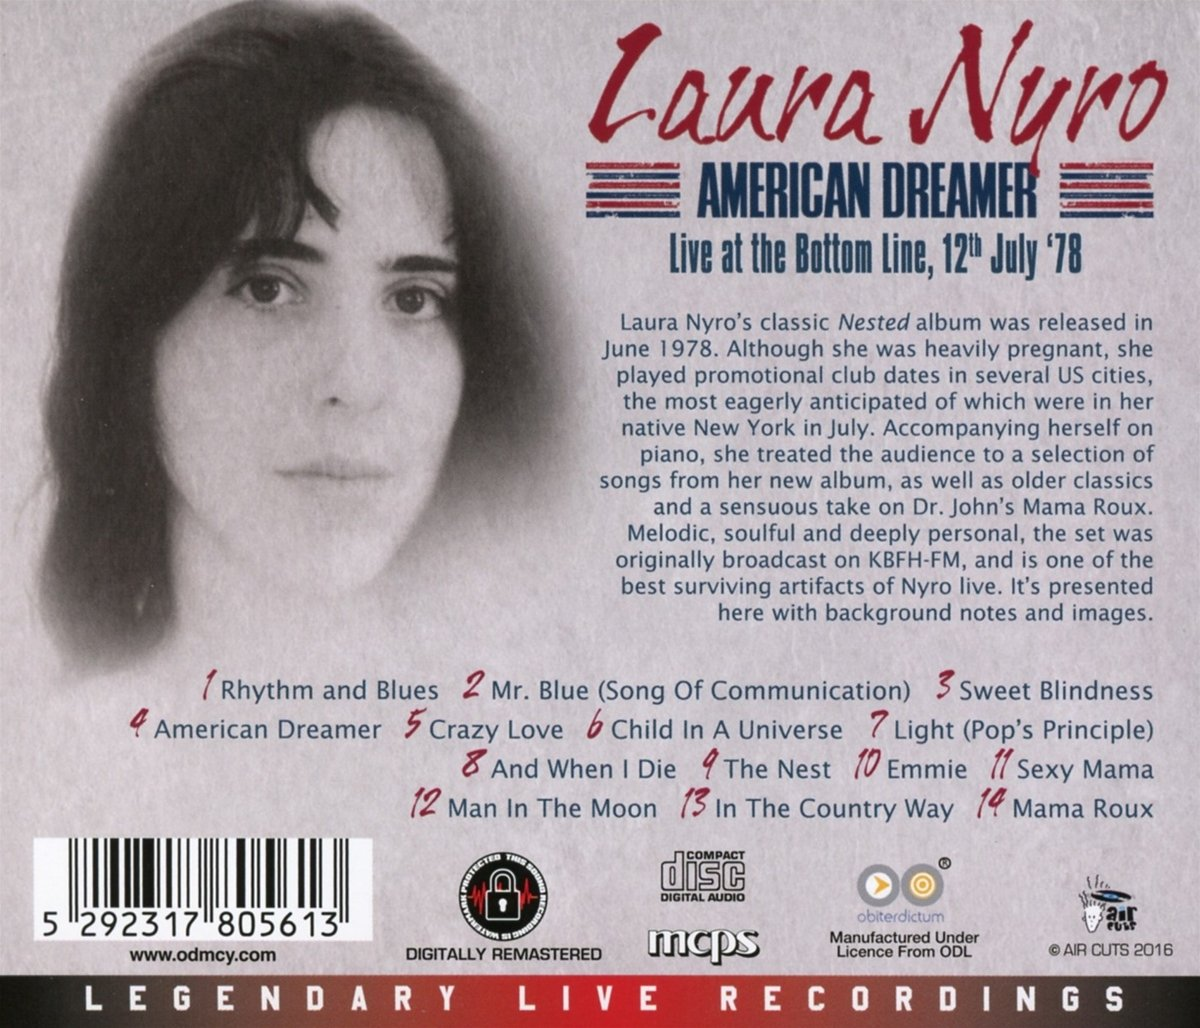 stoned soul picnic the best of laura nyro rar - Highpeak